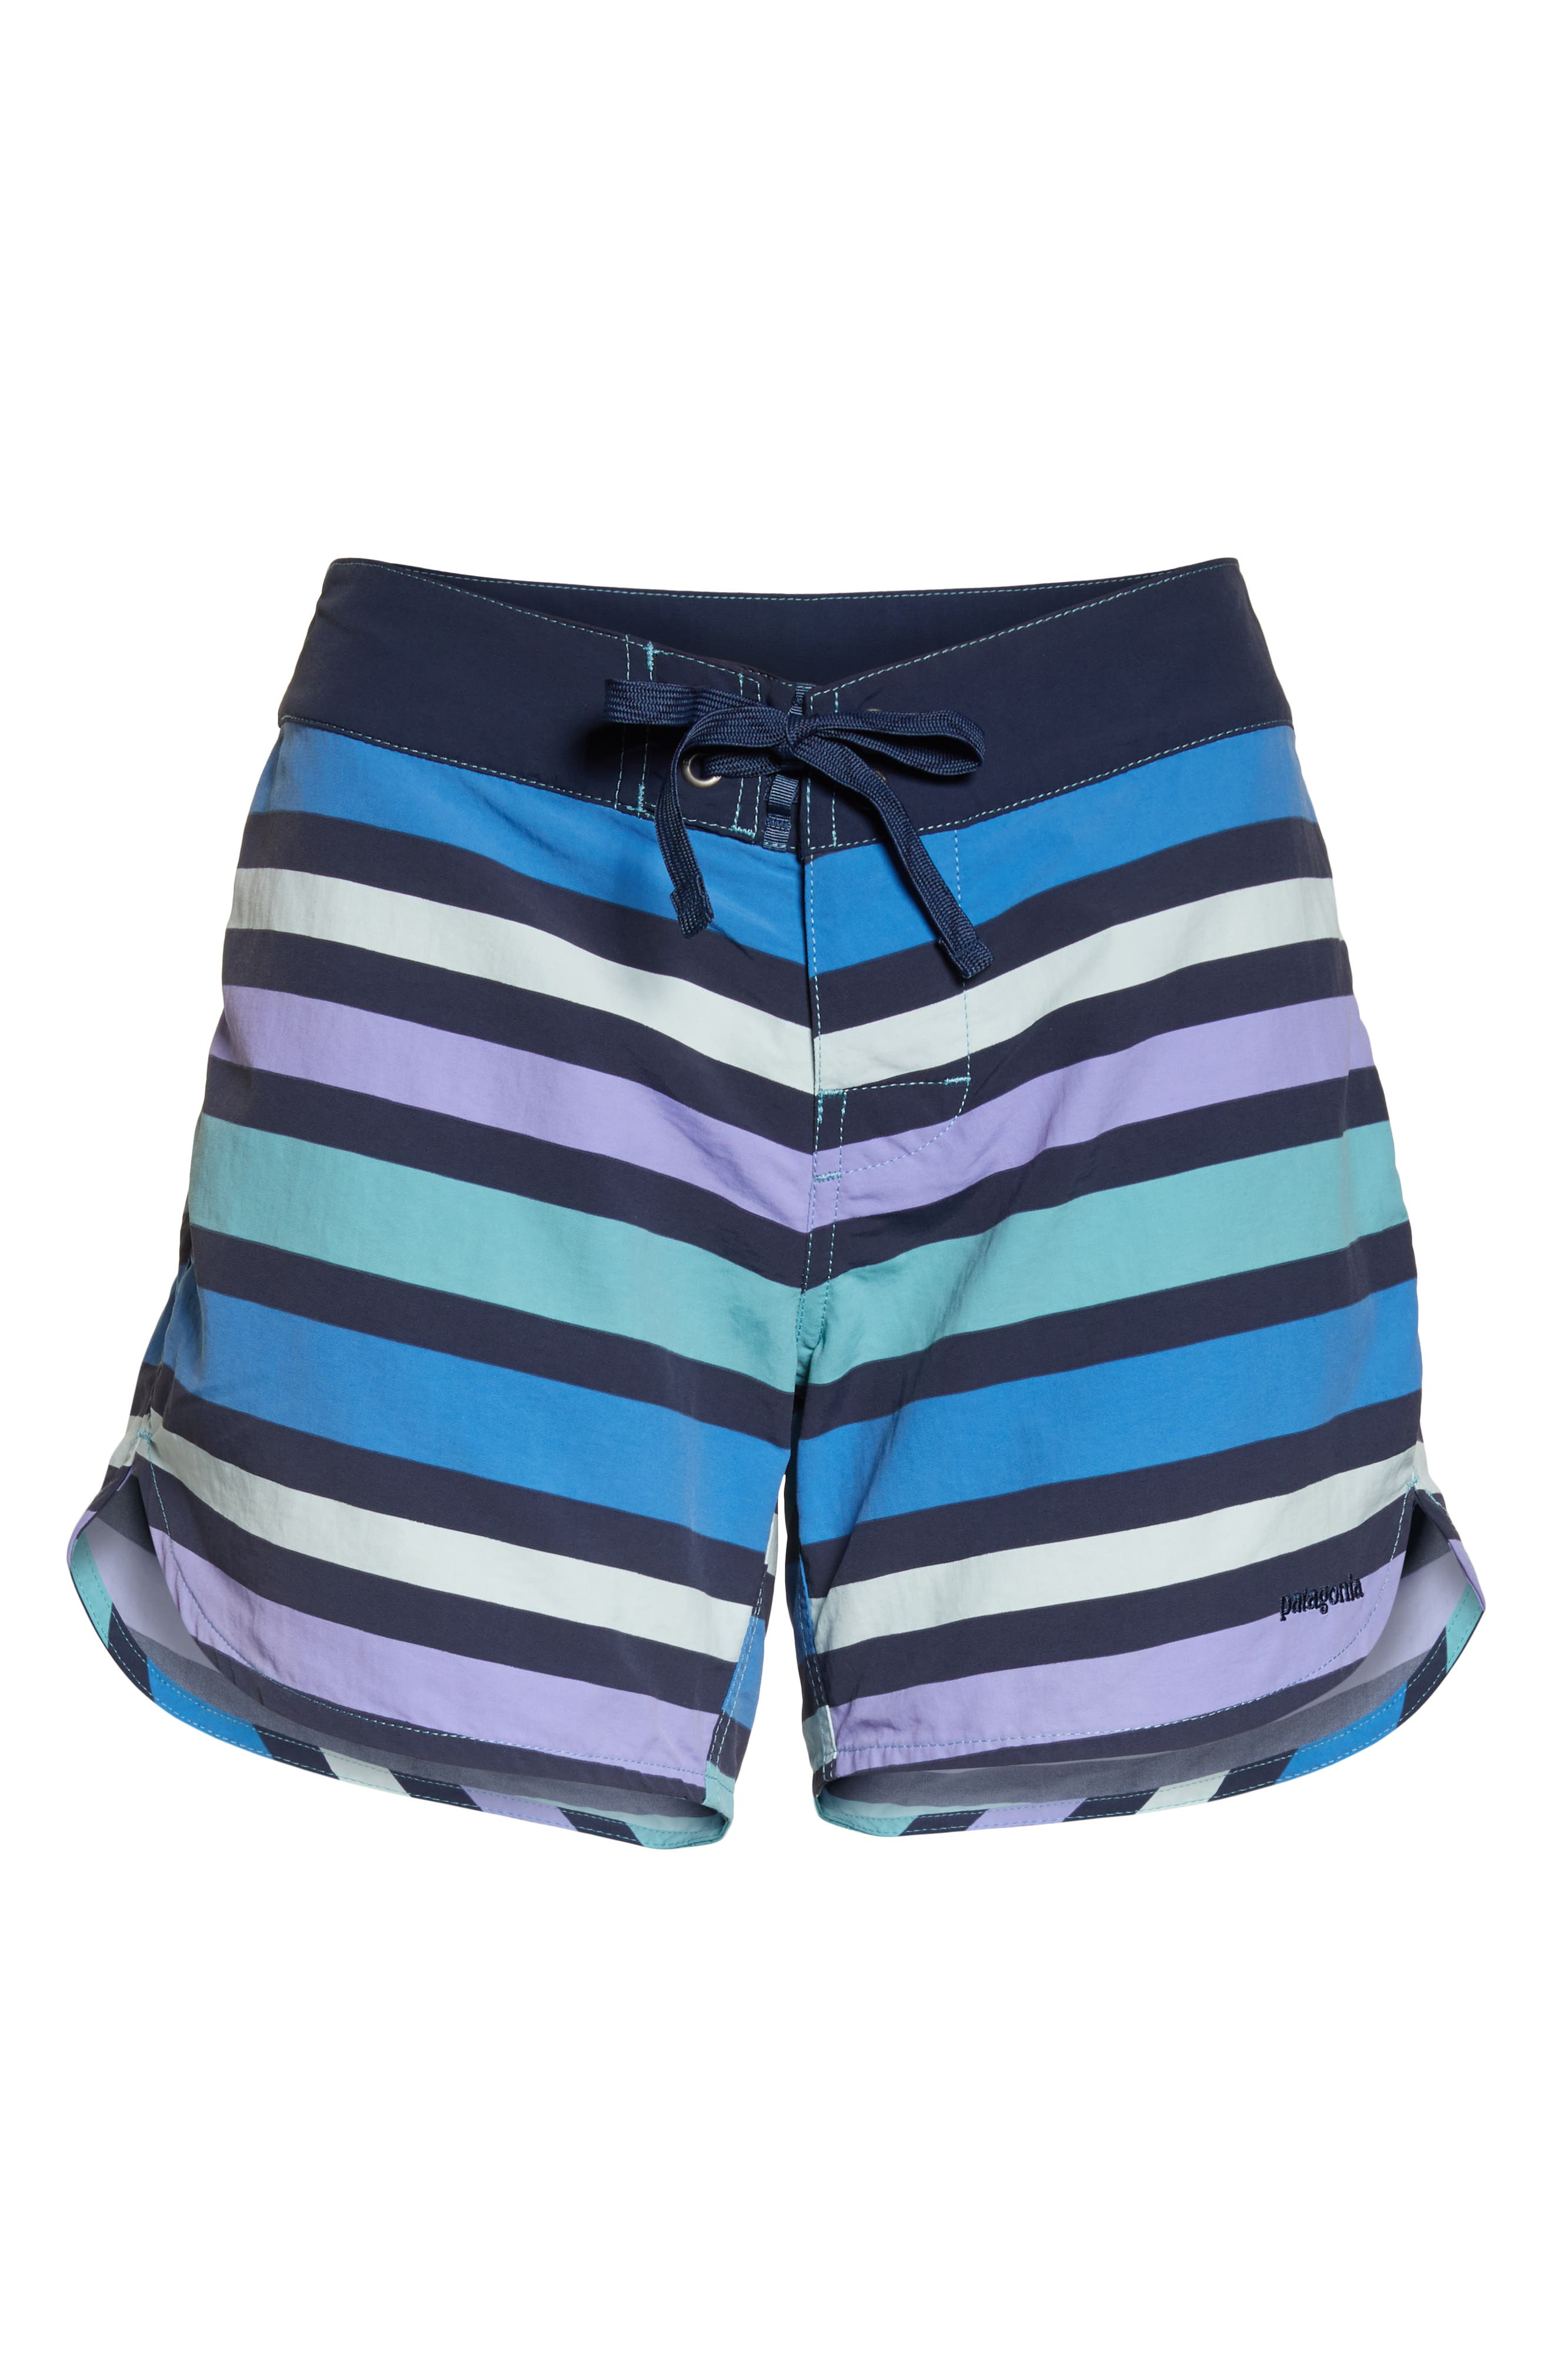 Wavefarer Board Shorts,                             Alternate thumbnail 6, color,                             401